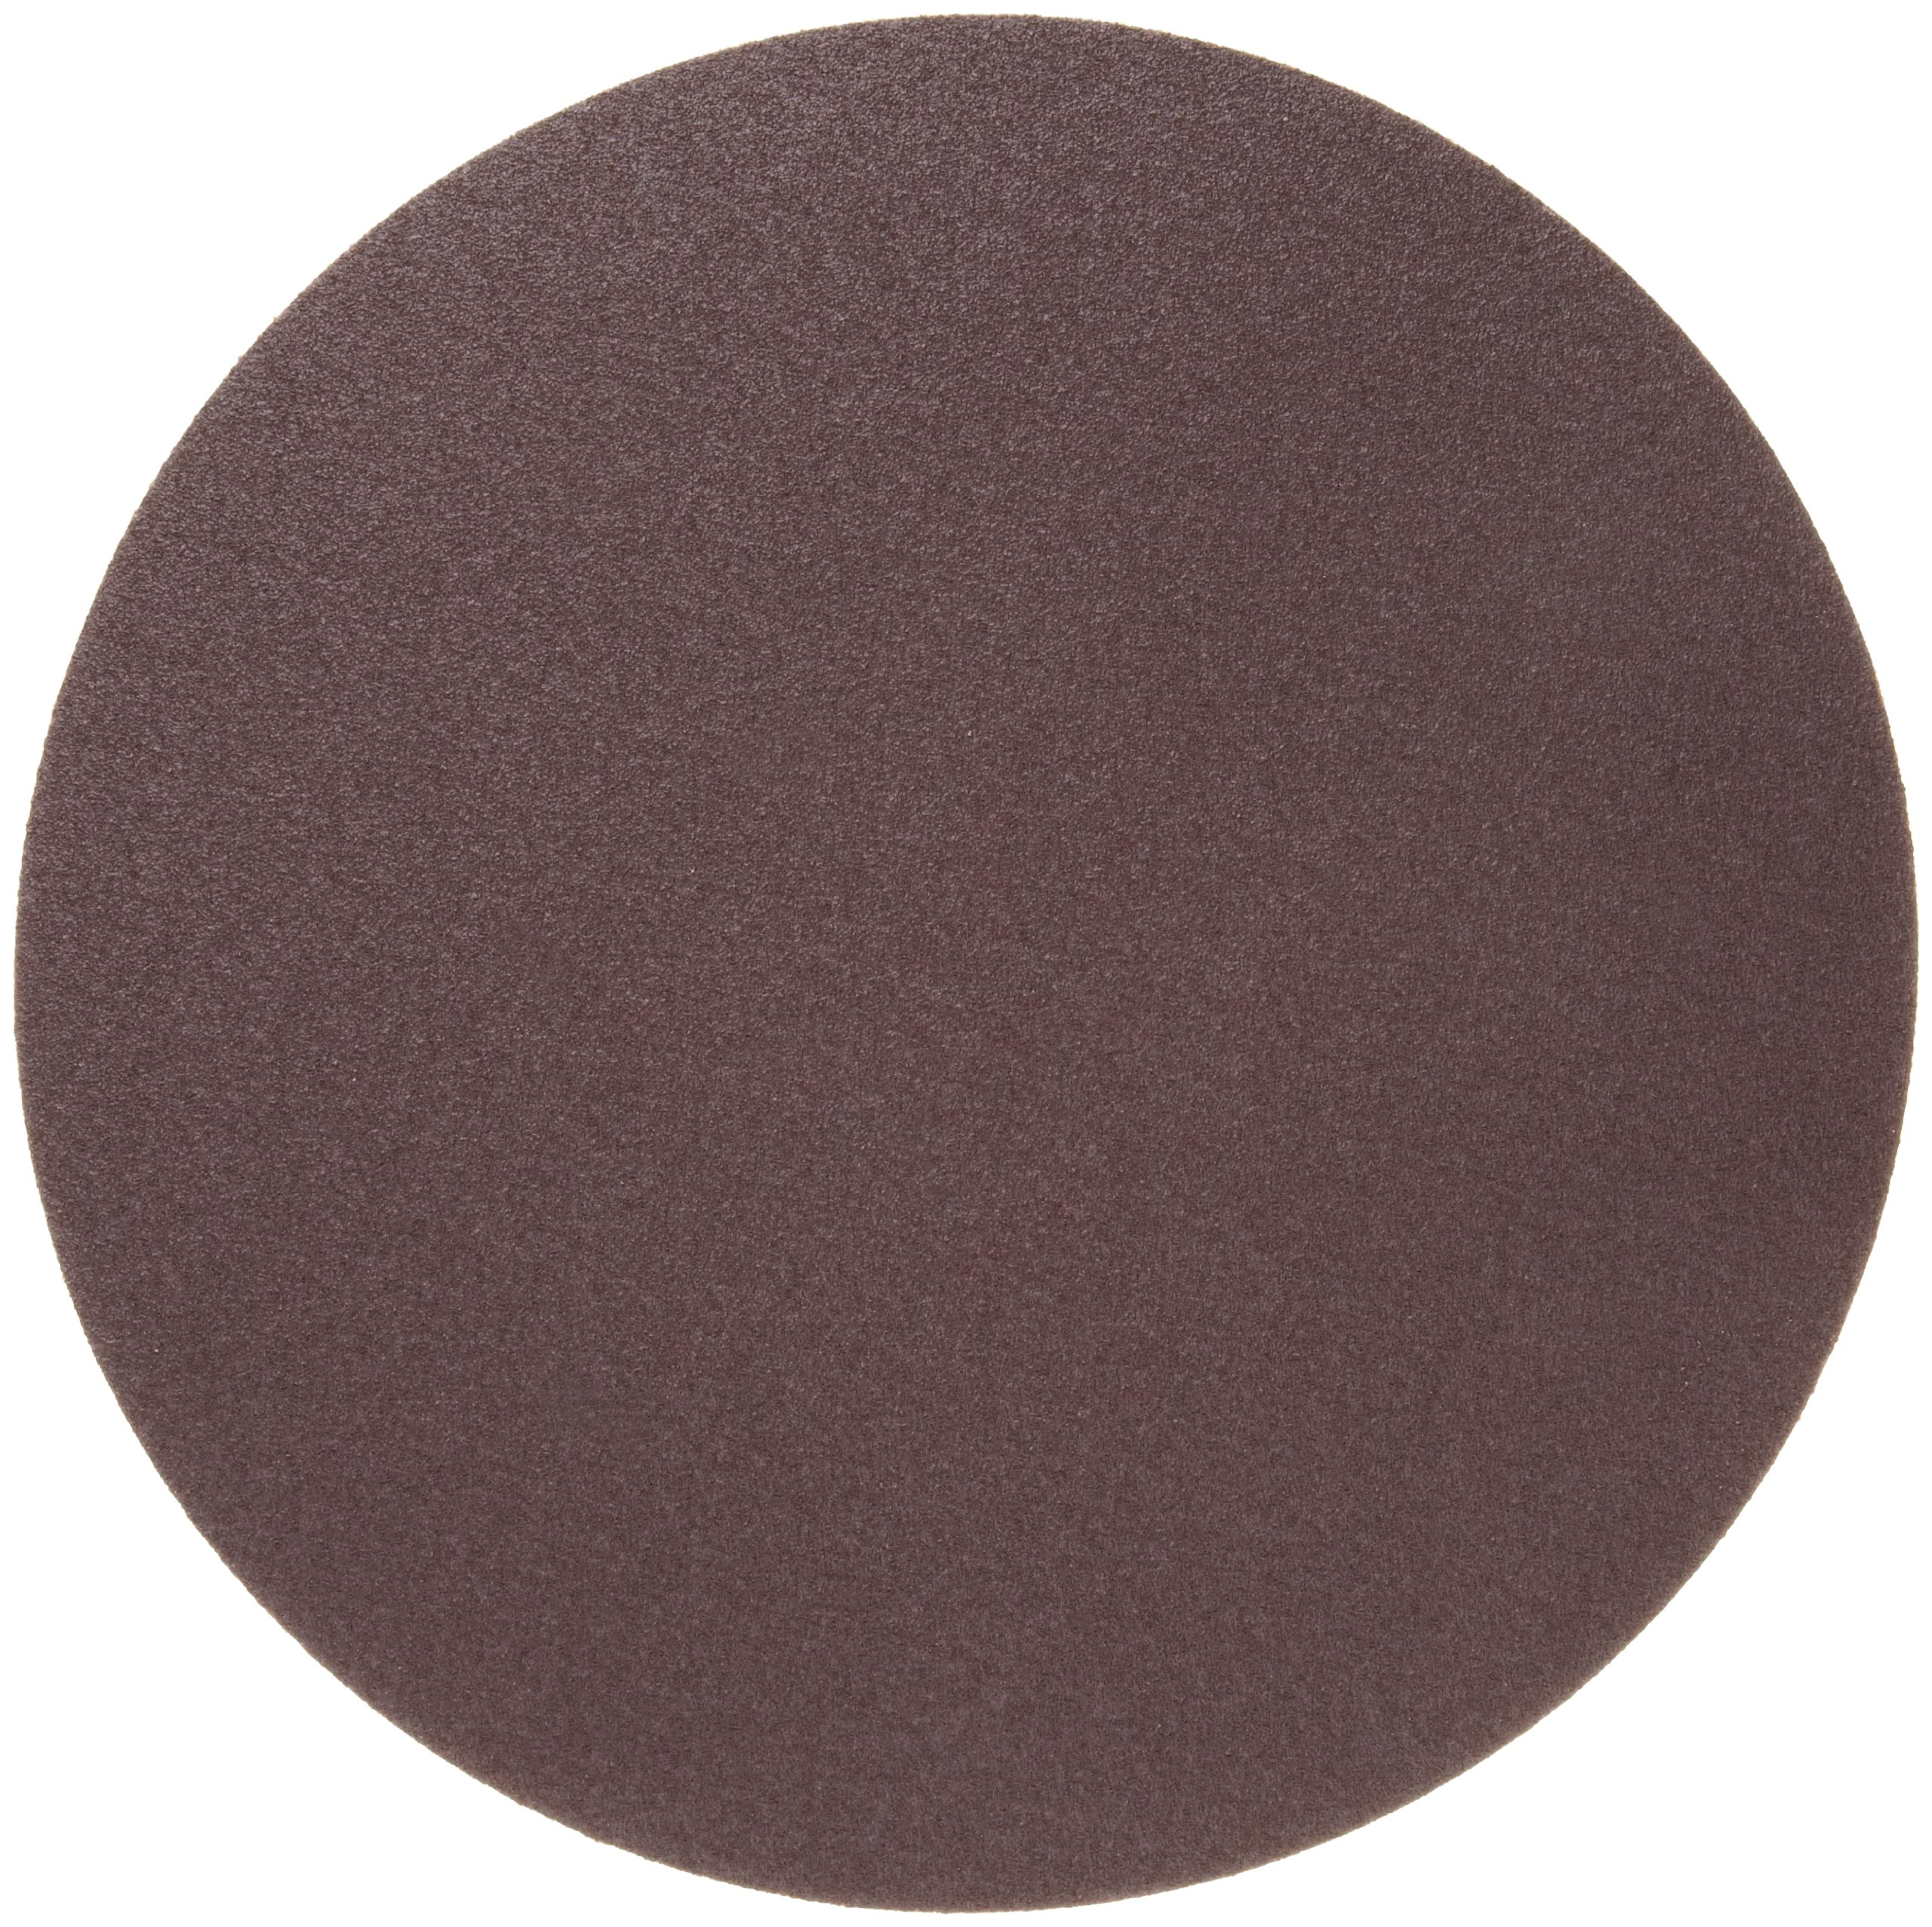 Norton Metalite R228 PSA Disc, Cloth Backing, Adhesive Backed, Aluminum Oxide, 12 inches Diameter, 120 Grit (Pack of 25)